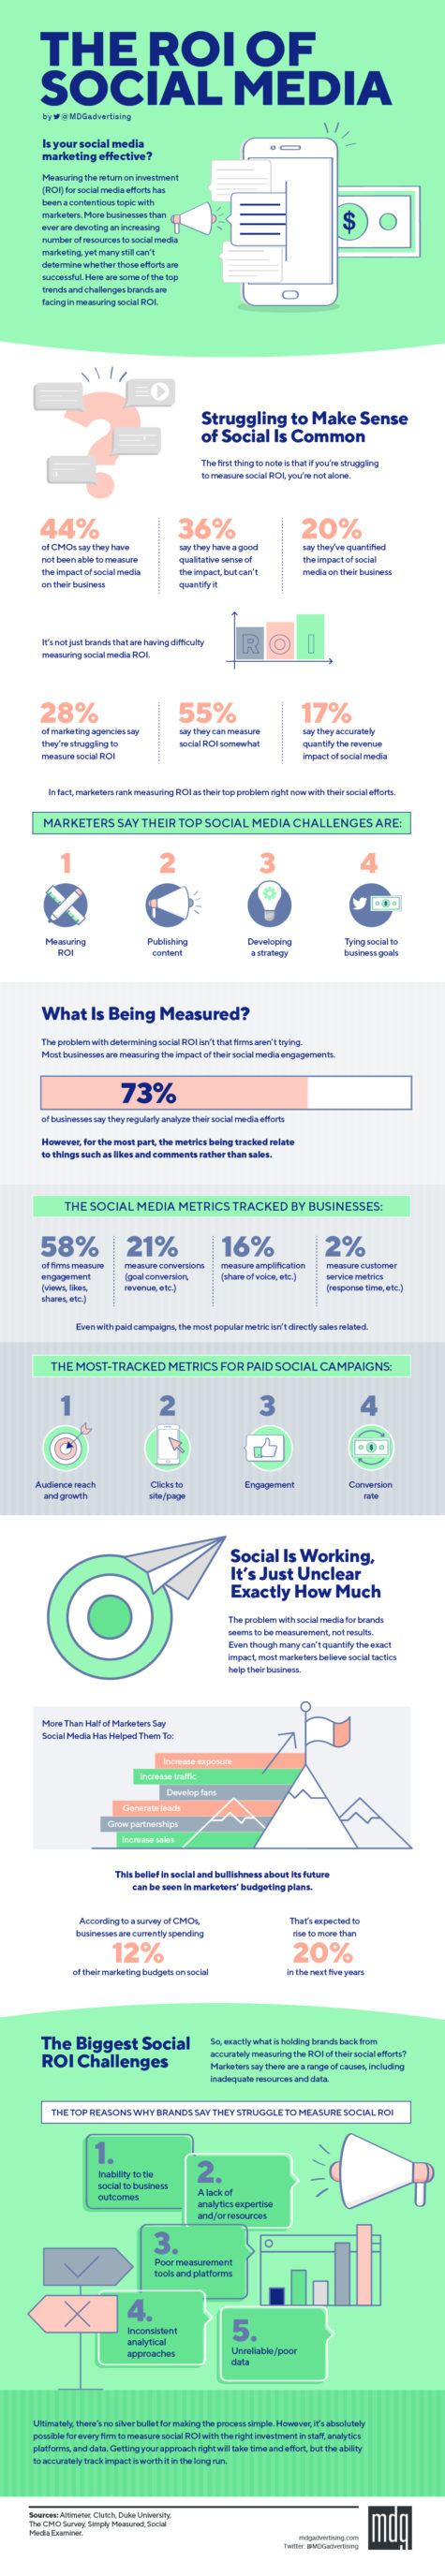 The ROI of Social Media [Infographic]